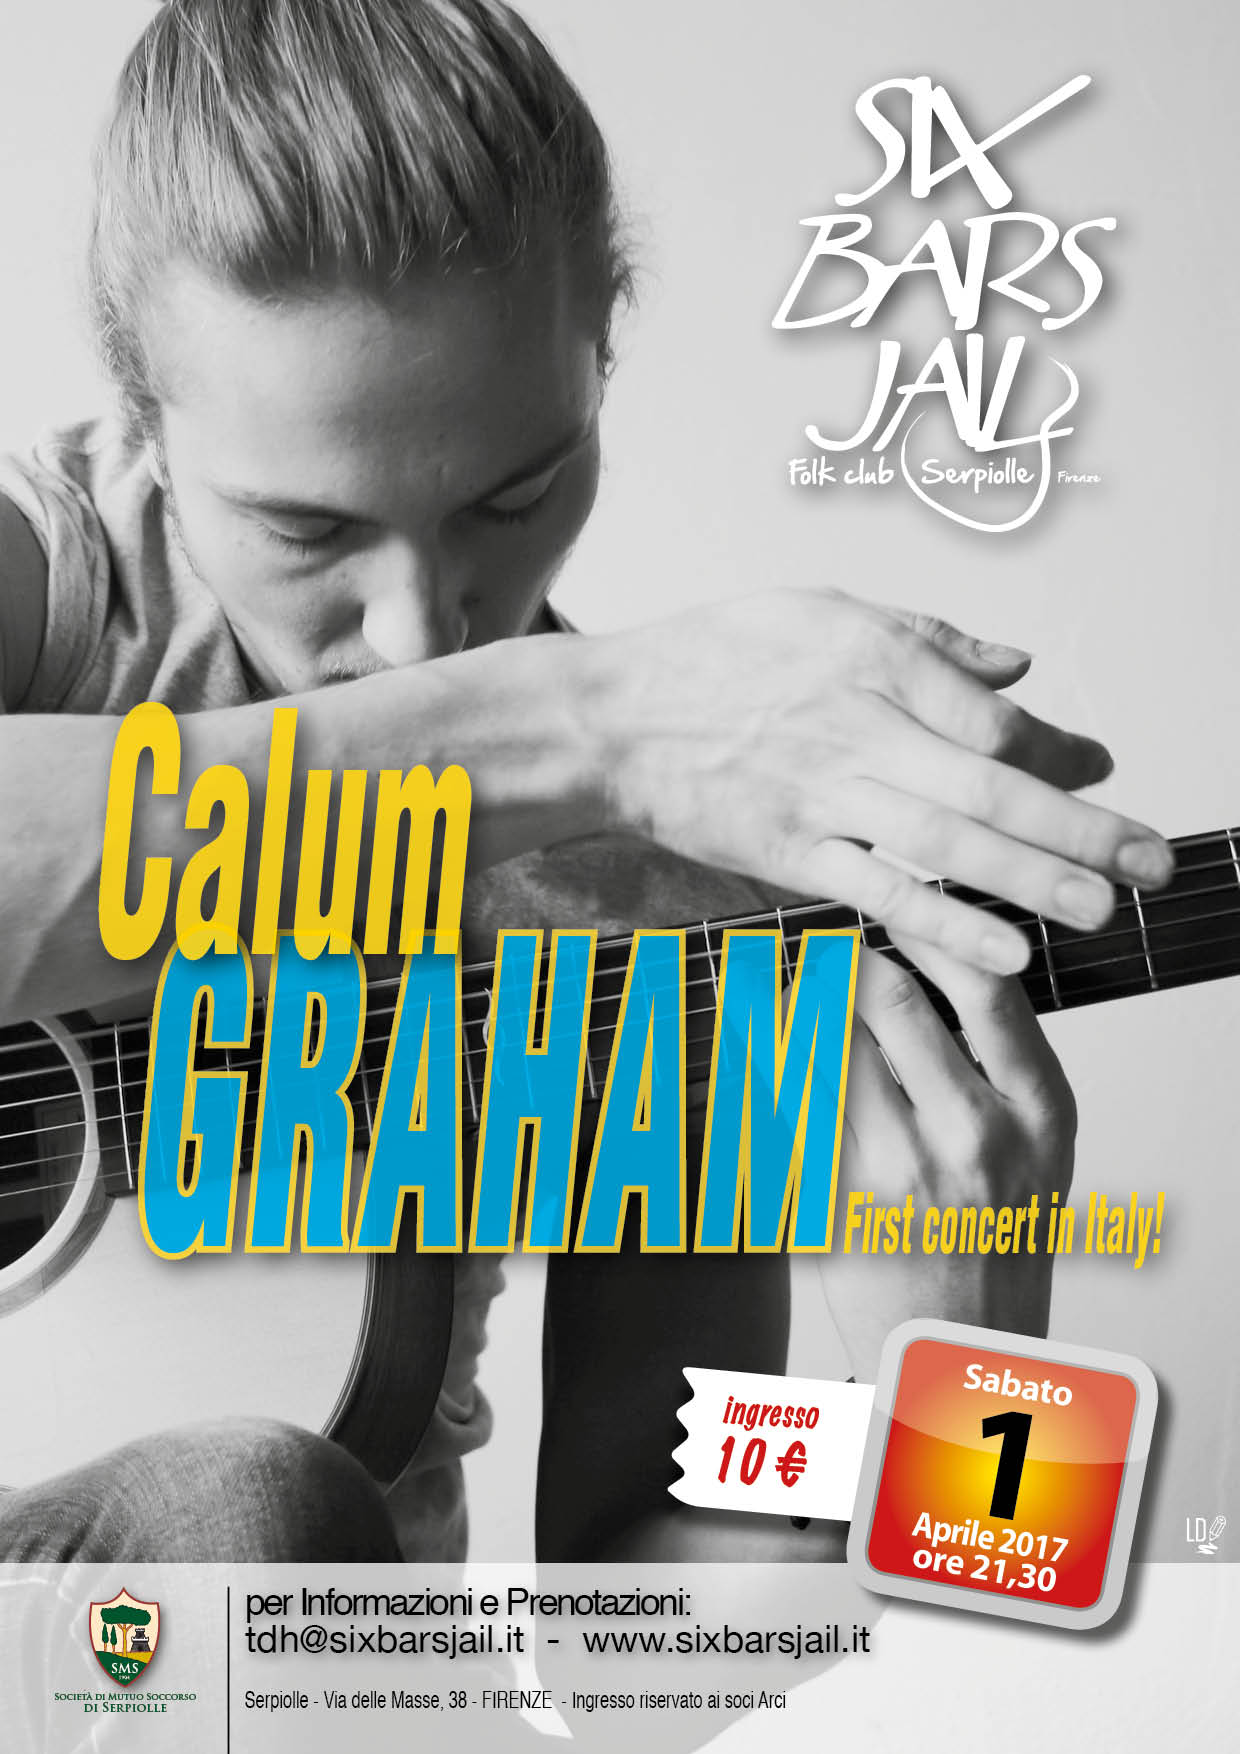 Calum Graham in concerto al Six Bars Jail - 1.4.17